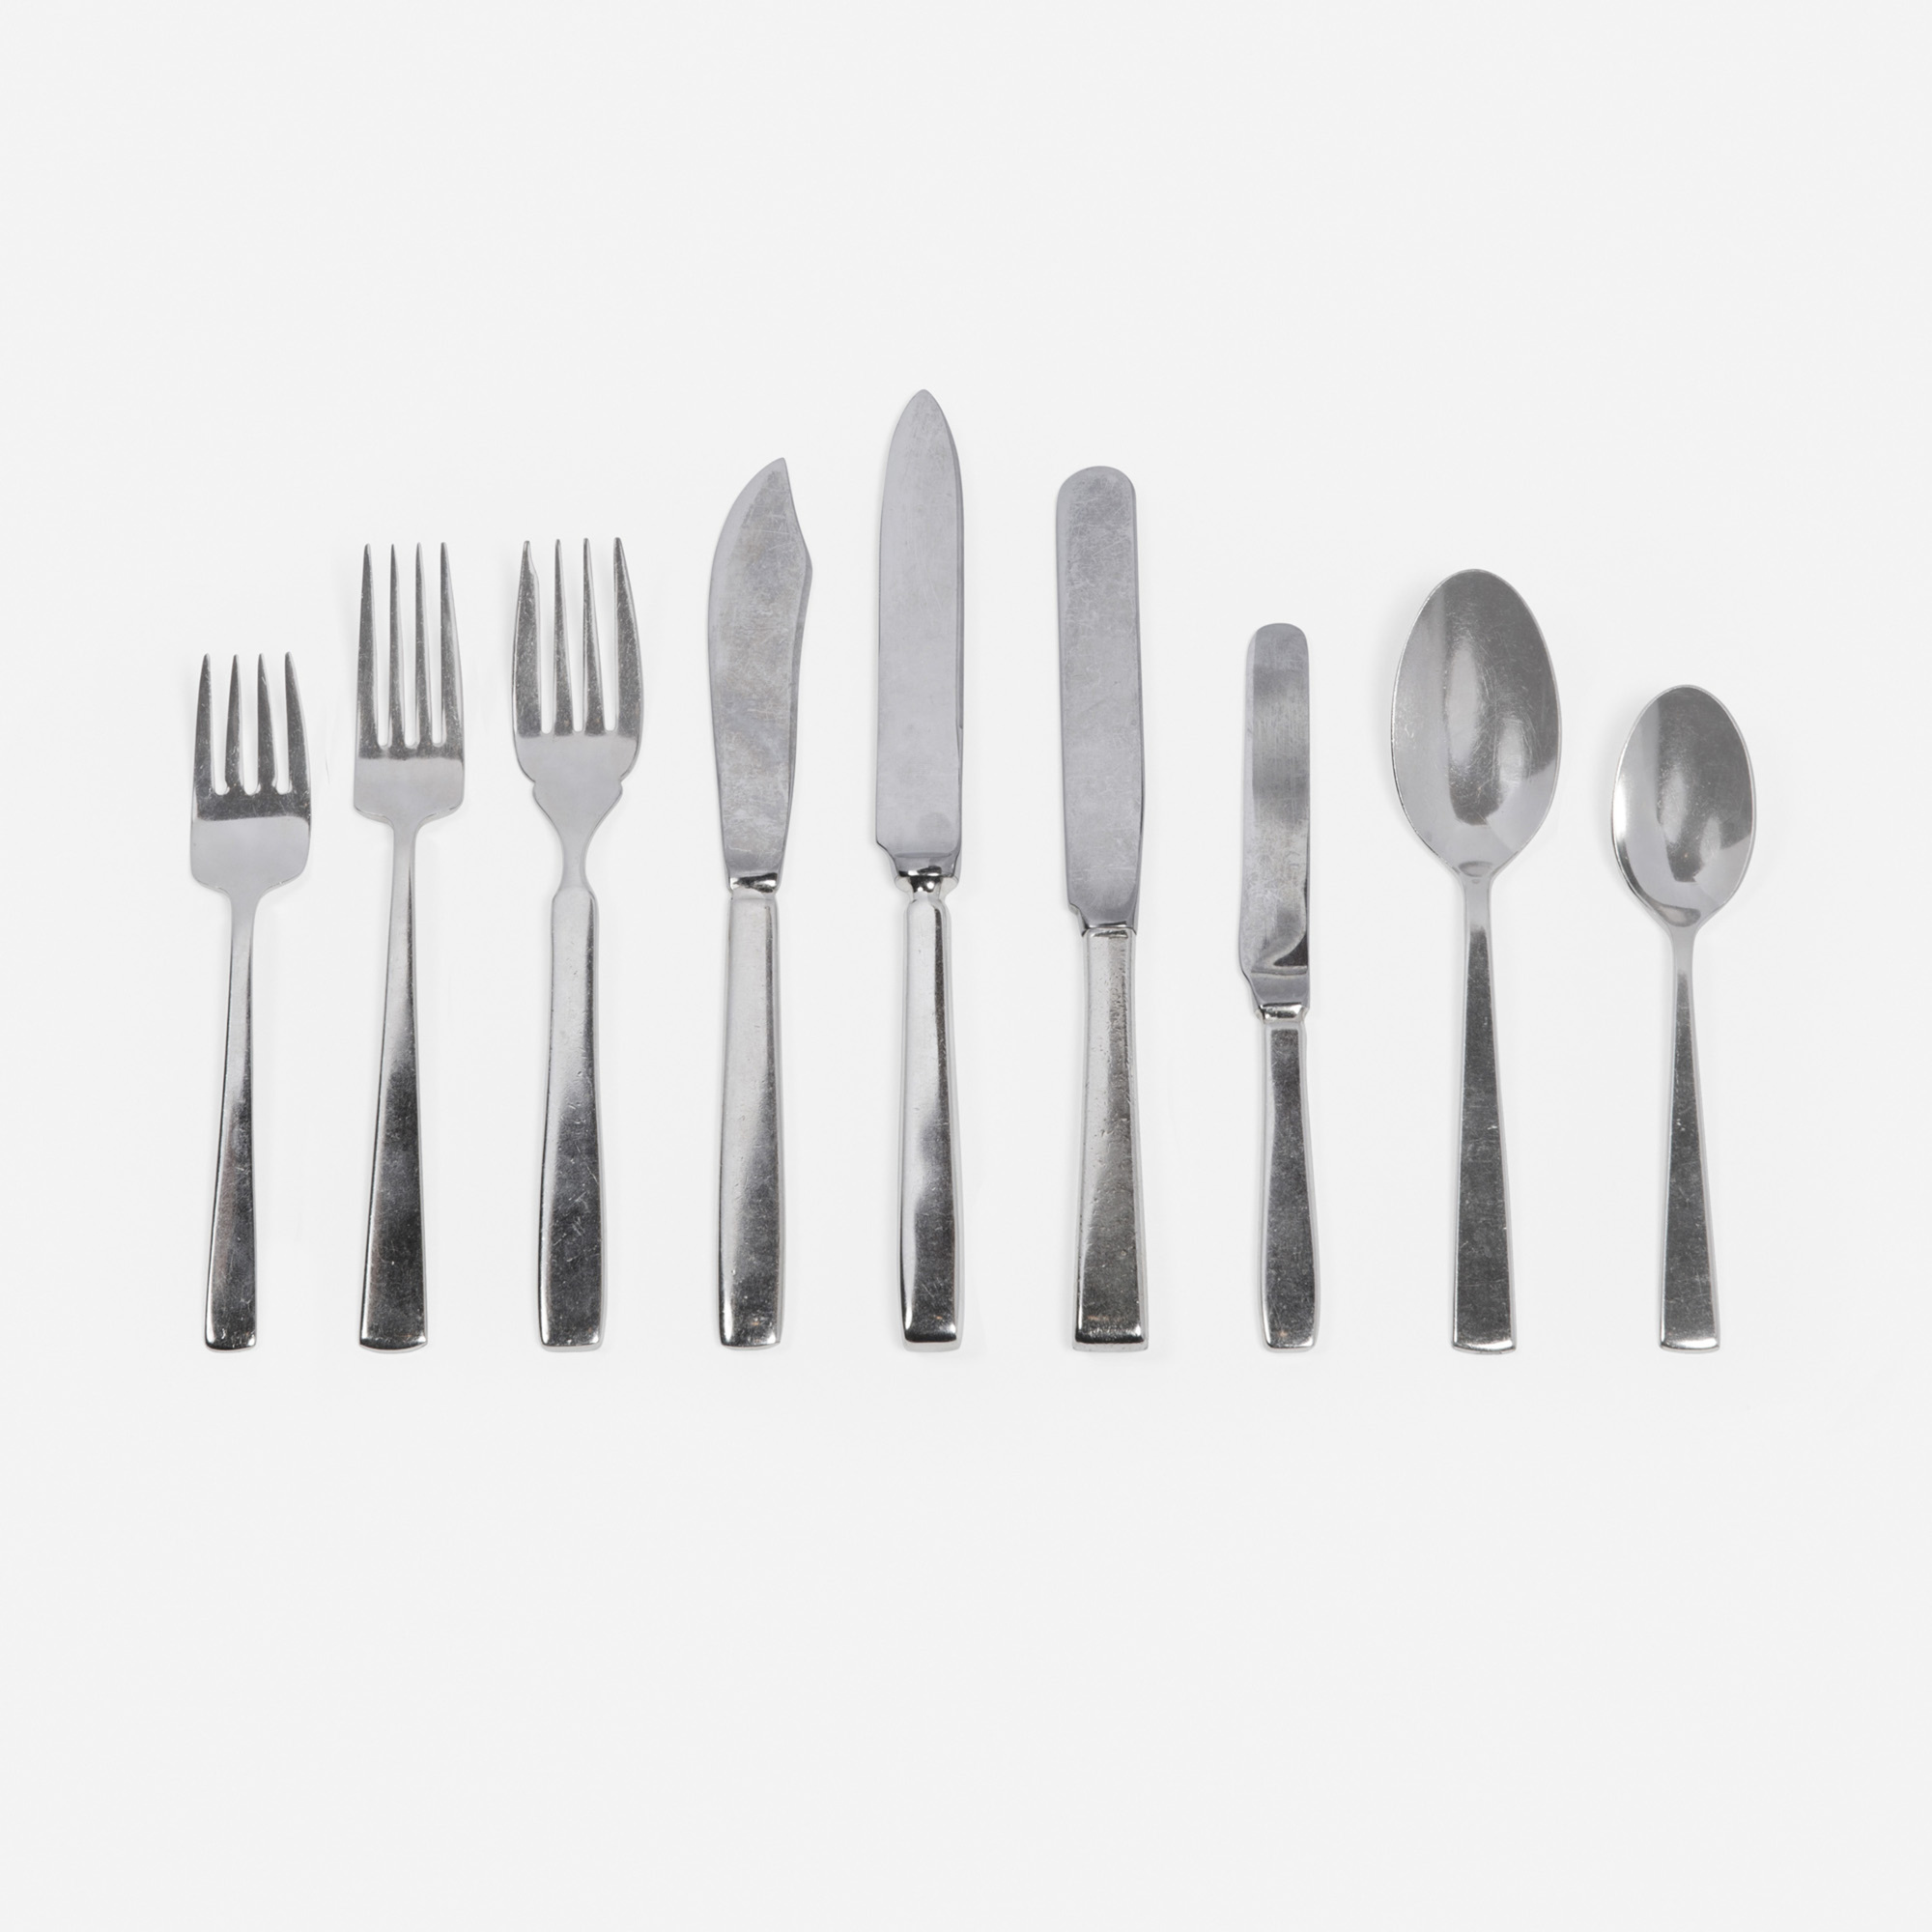 632: Garth and Ada Louise Huxtable / Four Seasons Luncheon flatware from the Pool Room, service for twelve (1 of 1)